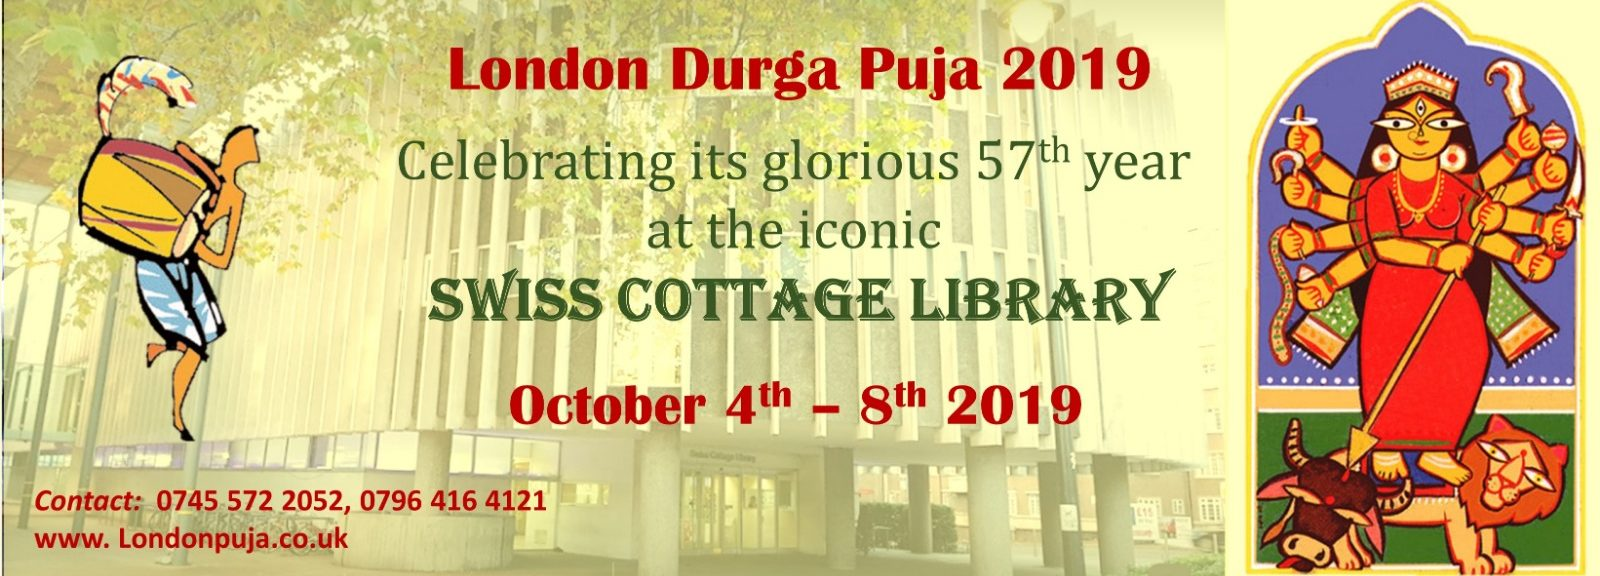 LONDON    DURGA    PUJA  –  2019